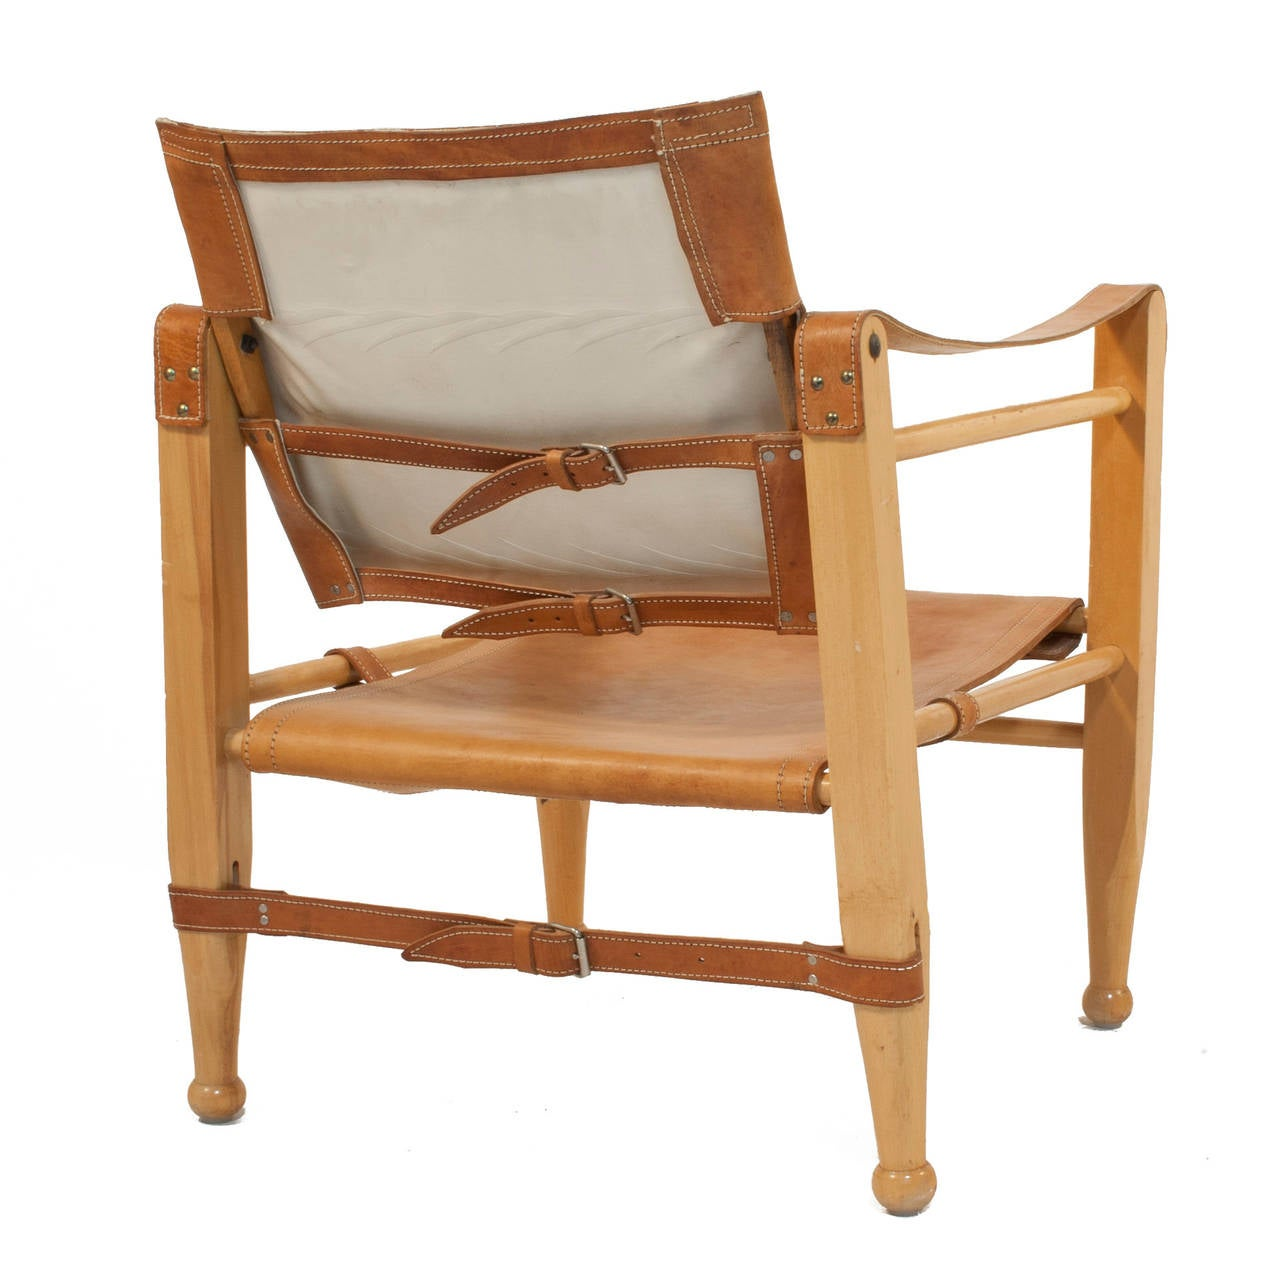 leather safari chair burlap covers pair of chairs at 1stdibs